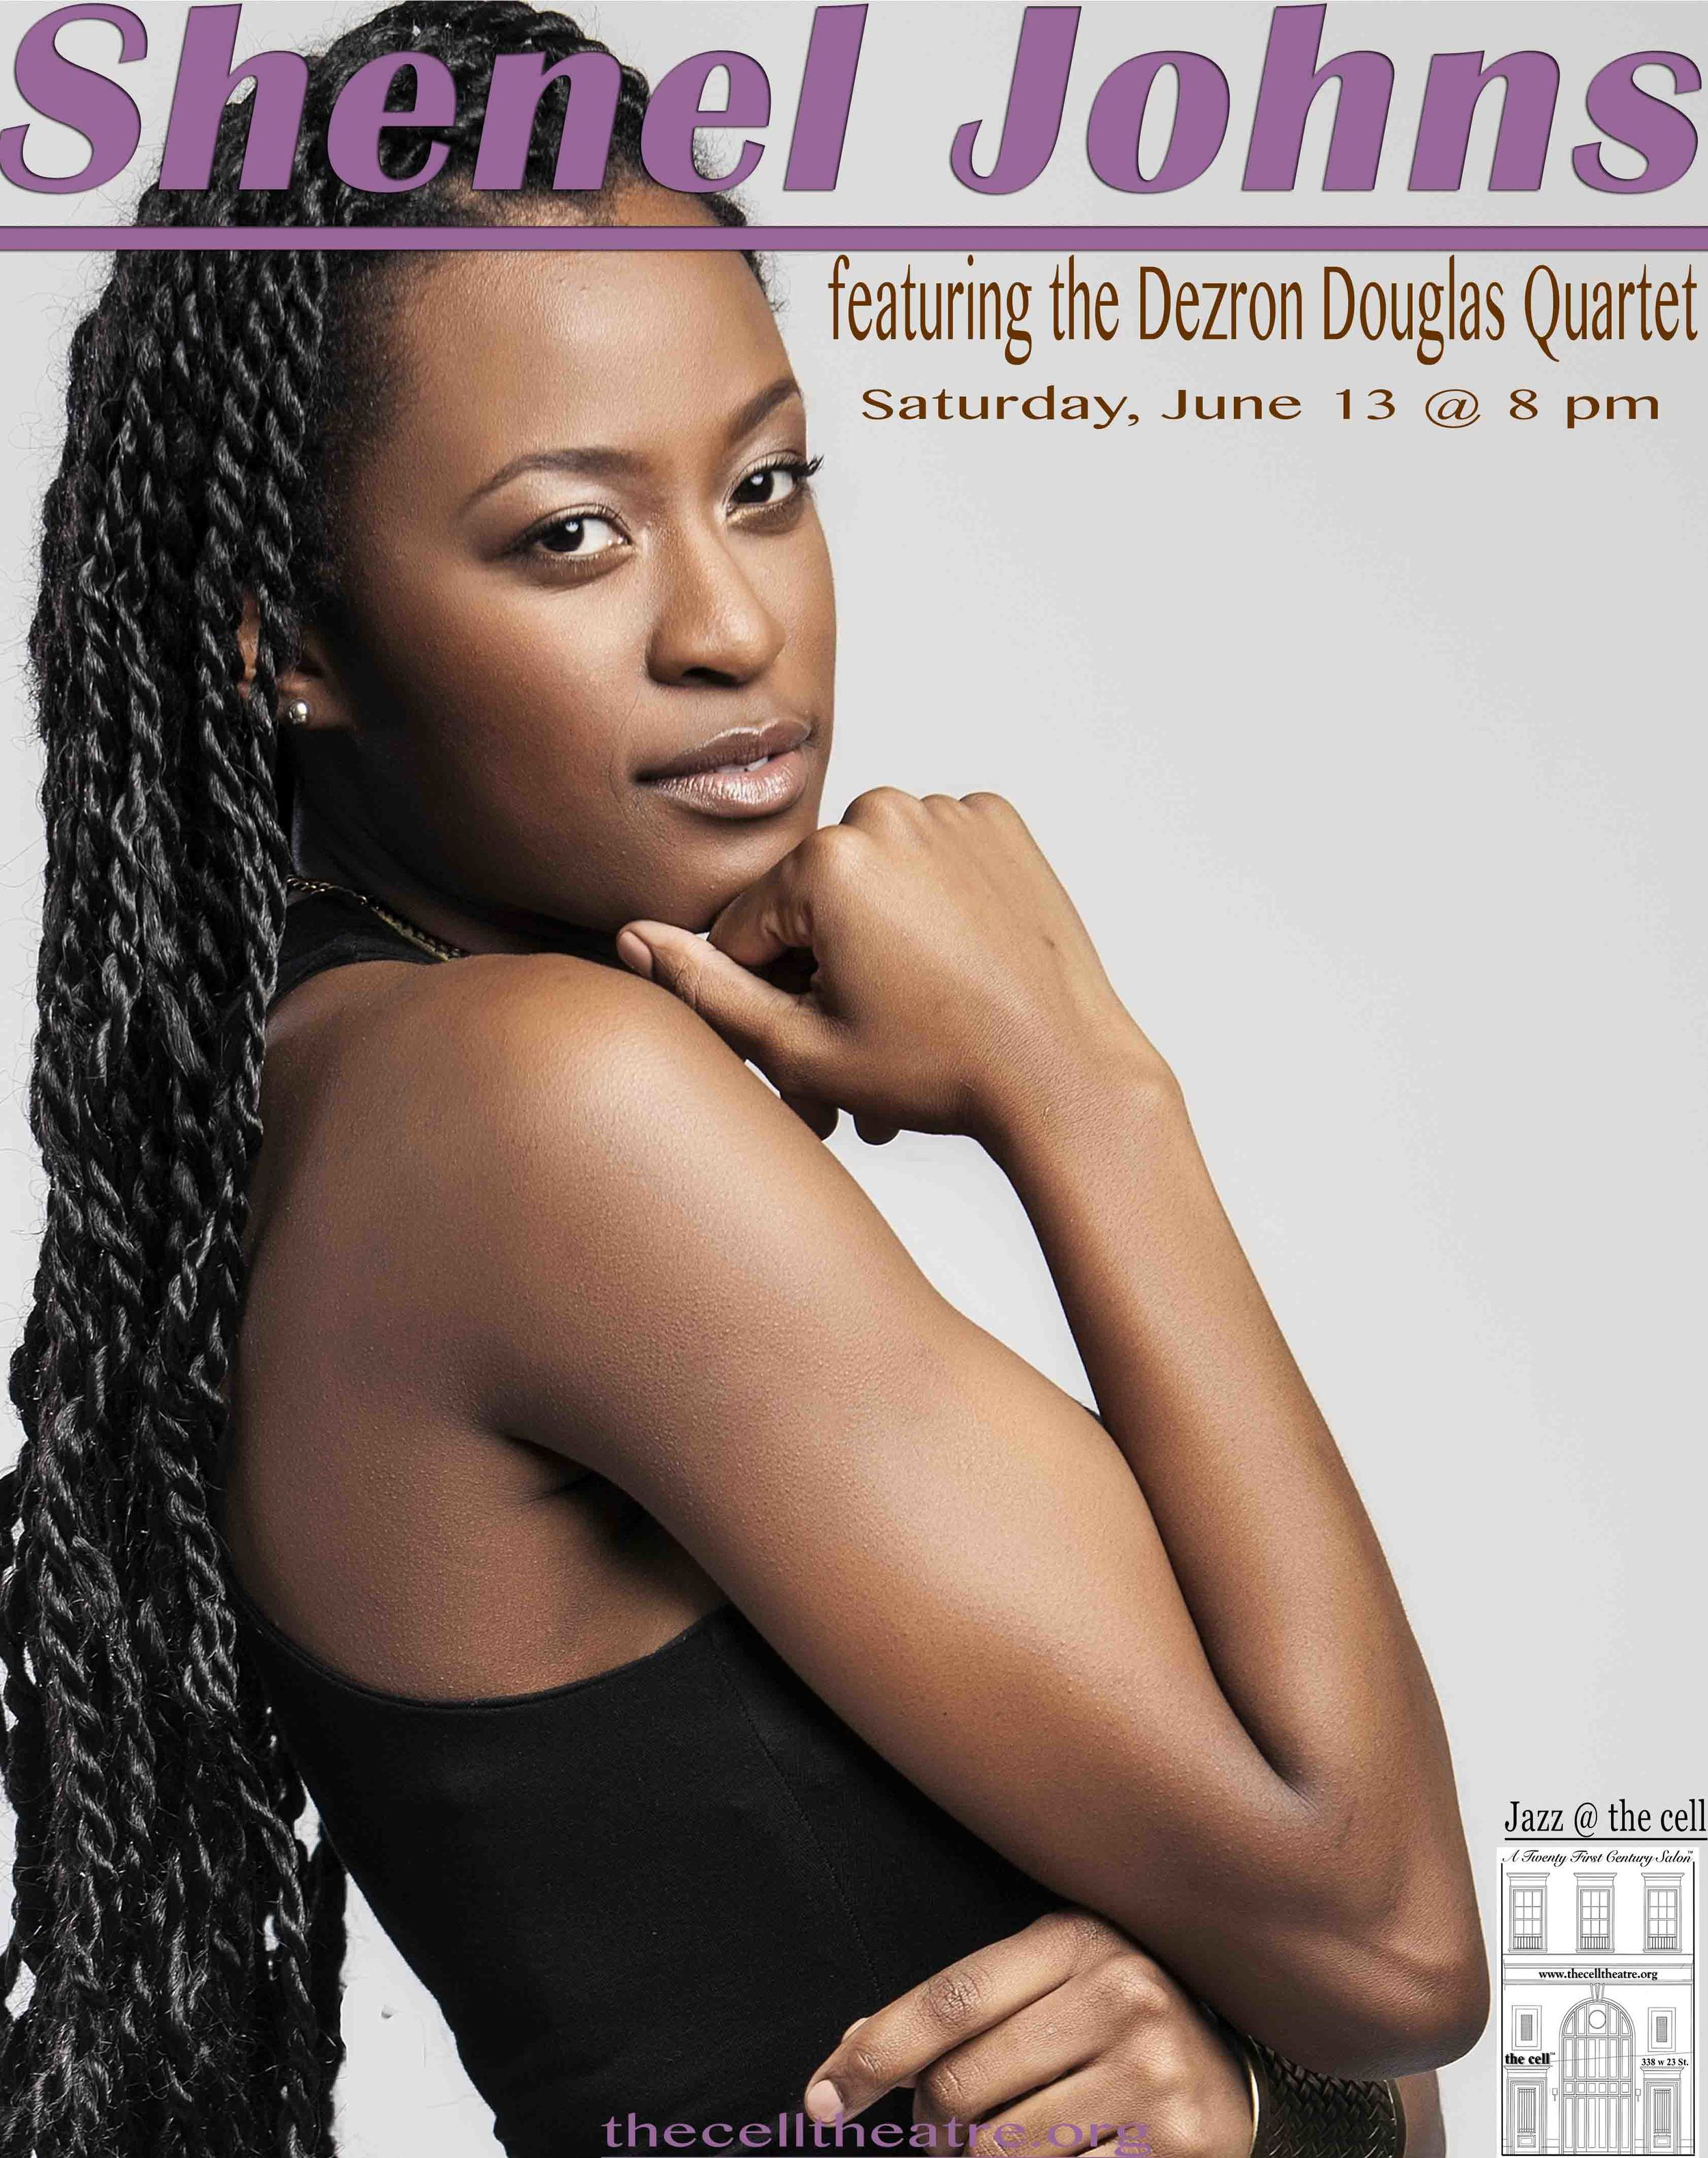 """Shenel Johns  is a native of Hartford, CT. She received a B.A. in Music Management and Jazz Studies at the Hartt School of Music where she studied Jazz voice and Music Management with legends such as Rene McLean, Shawnn Monteiro, Nat Reeves, and Steve Davis. Her major influences to date are Nancy Wilson, Ella Fitzgerald, and Betty Carter. This song bird has been performing across the New England area since the age of 14 and has opened up for recording artists Sheila Jordan, Hank Jones, and Harold Mabern to name a few.     Shenel's ambitions are not only to be among the most successful Crossover Jazz musicians of her generation but to keep the world of Jazz alive.    About her residency @ the cell, Shenel stated, """"  I have had the greatest pleasure of playing in venues around New York since my residency.  the cell  is by far a platform unlike any other I've experienced. With a comfortable and intimate set up and staff that is more like family: this venue will be the space that I create without inhibitions, where the stage extends into audience, and where my rawest and purest material will be first received by like minded enthusiasts!"""""""